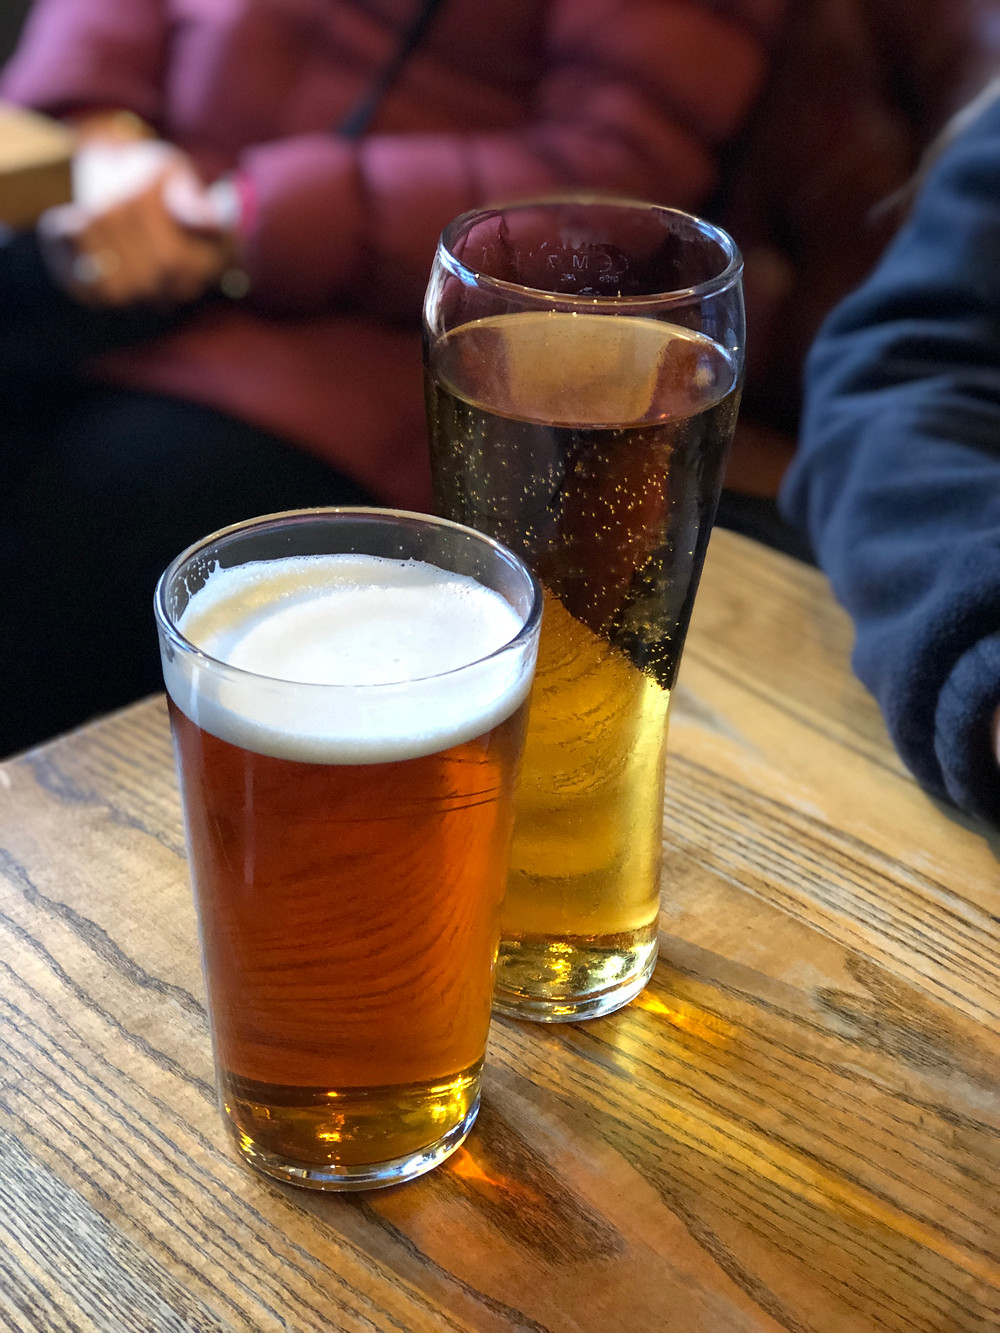 Pints of beer and cider in The Last Drop Pub in Edinburgh, Scotland